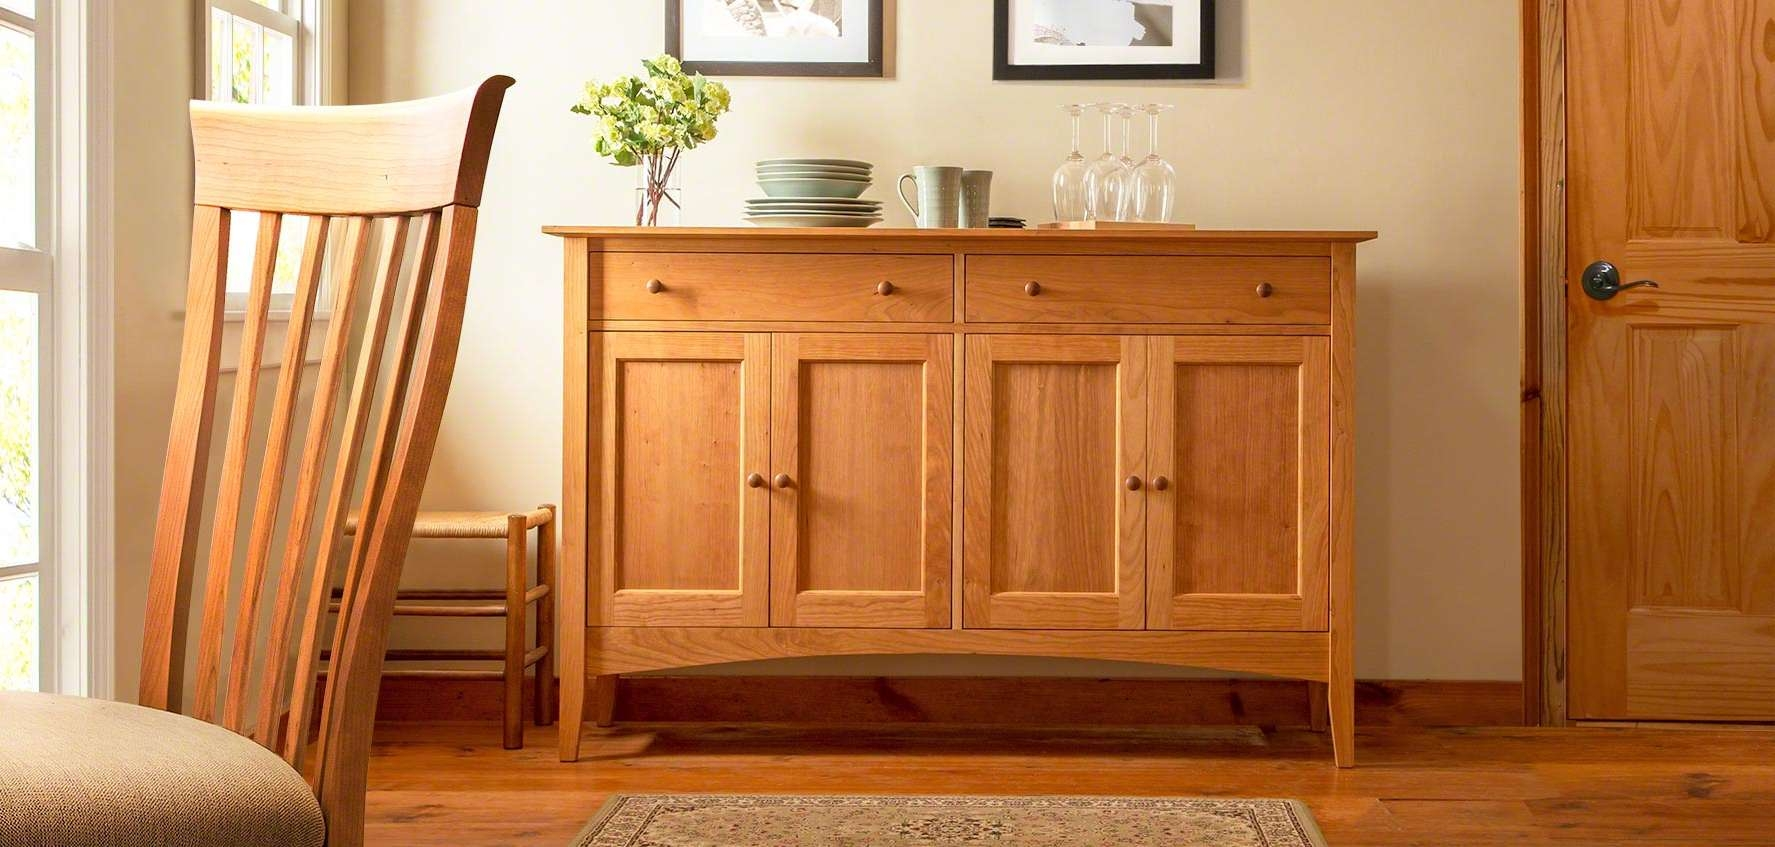 Solid Wood Sideboards, Buffets, & Hutches – Vermont Woods Studios Throughout Wood Sideboards (View 20 of 20)